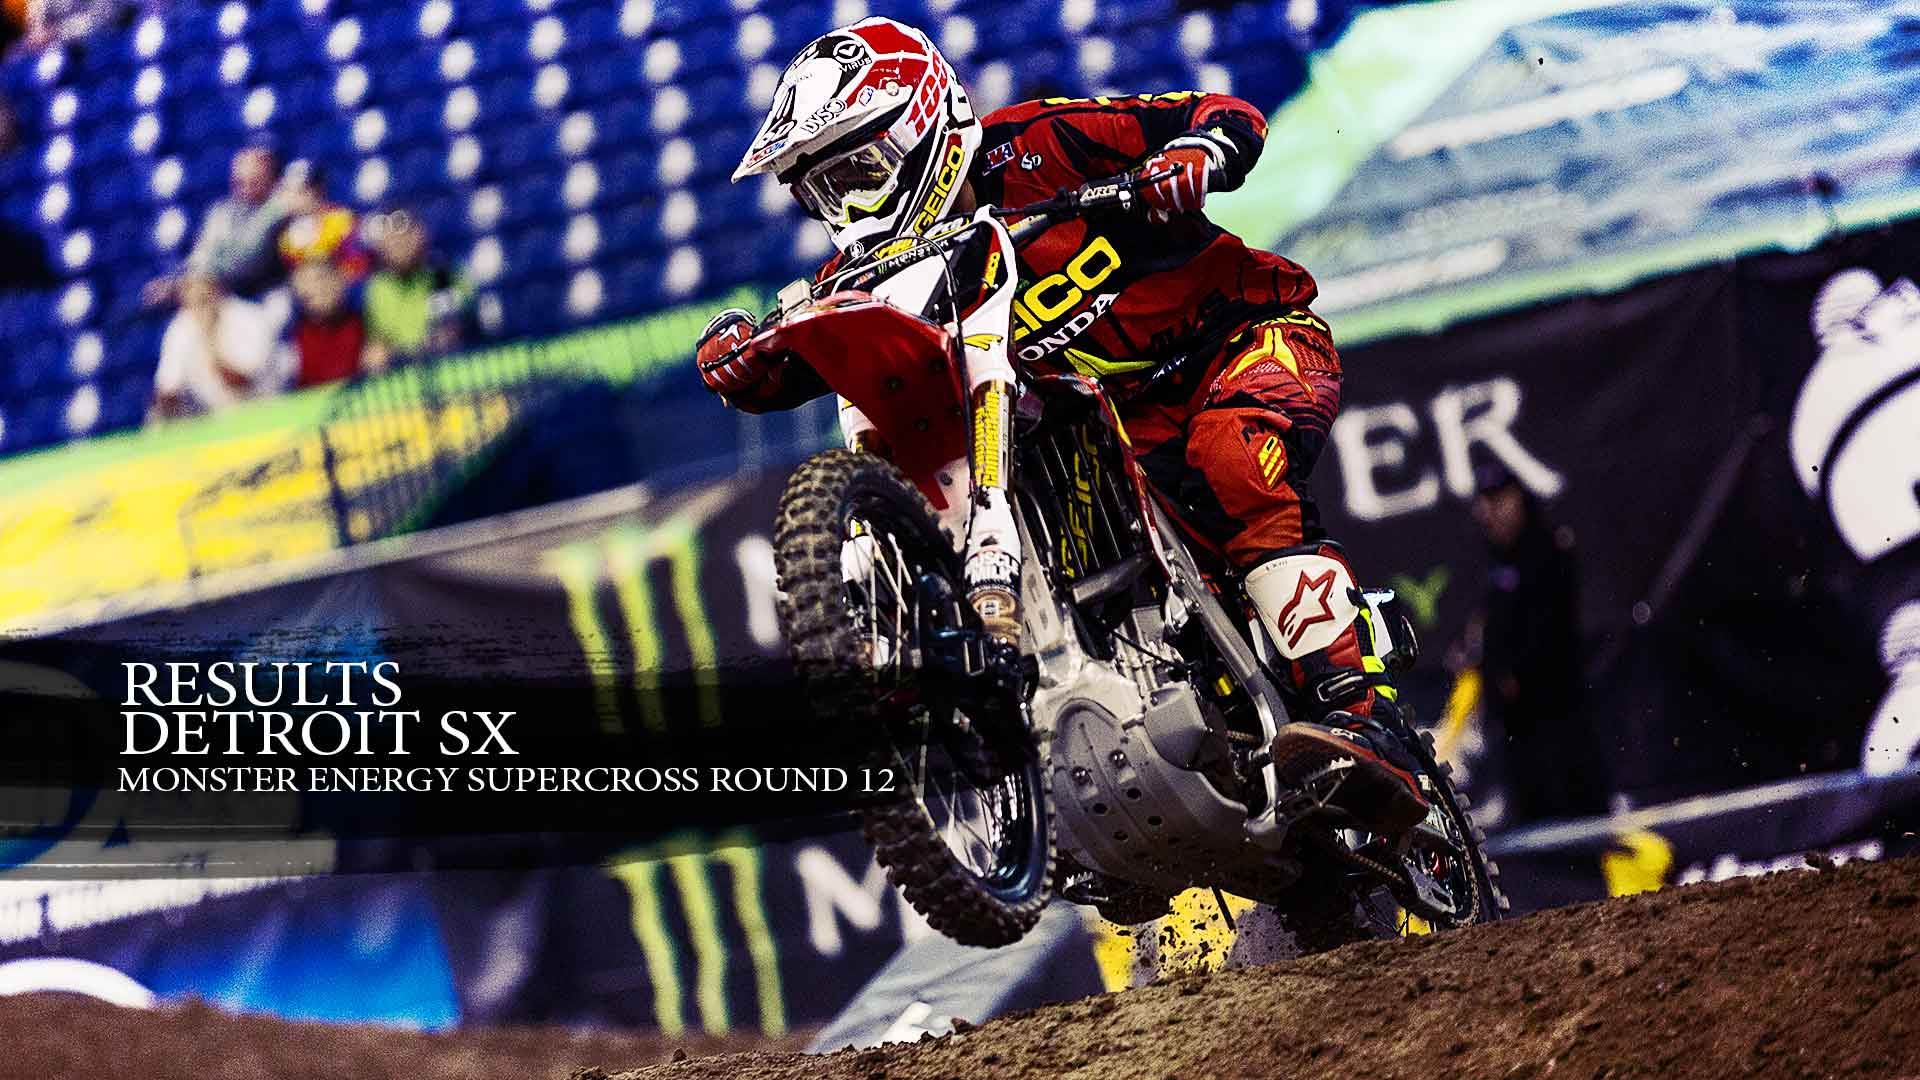 Results: Detroit Supercross and Point Standings